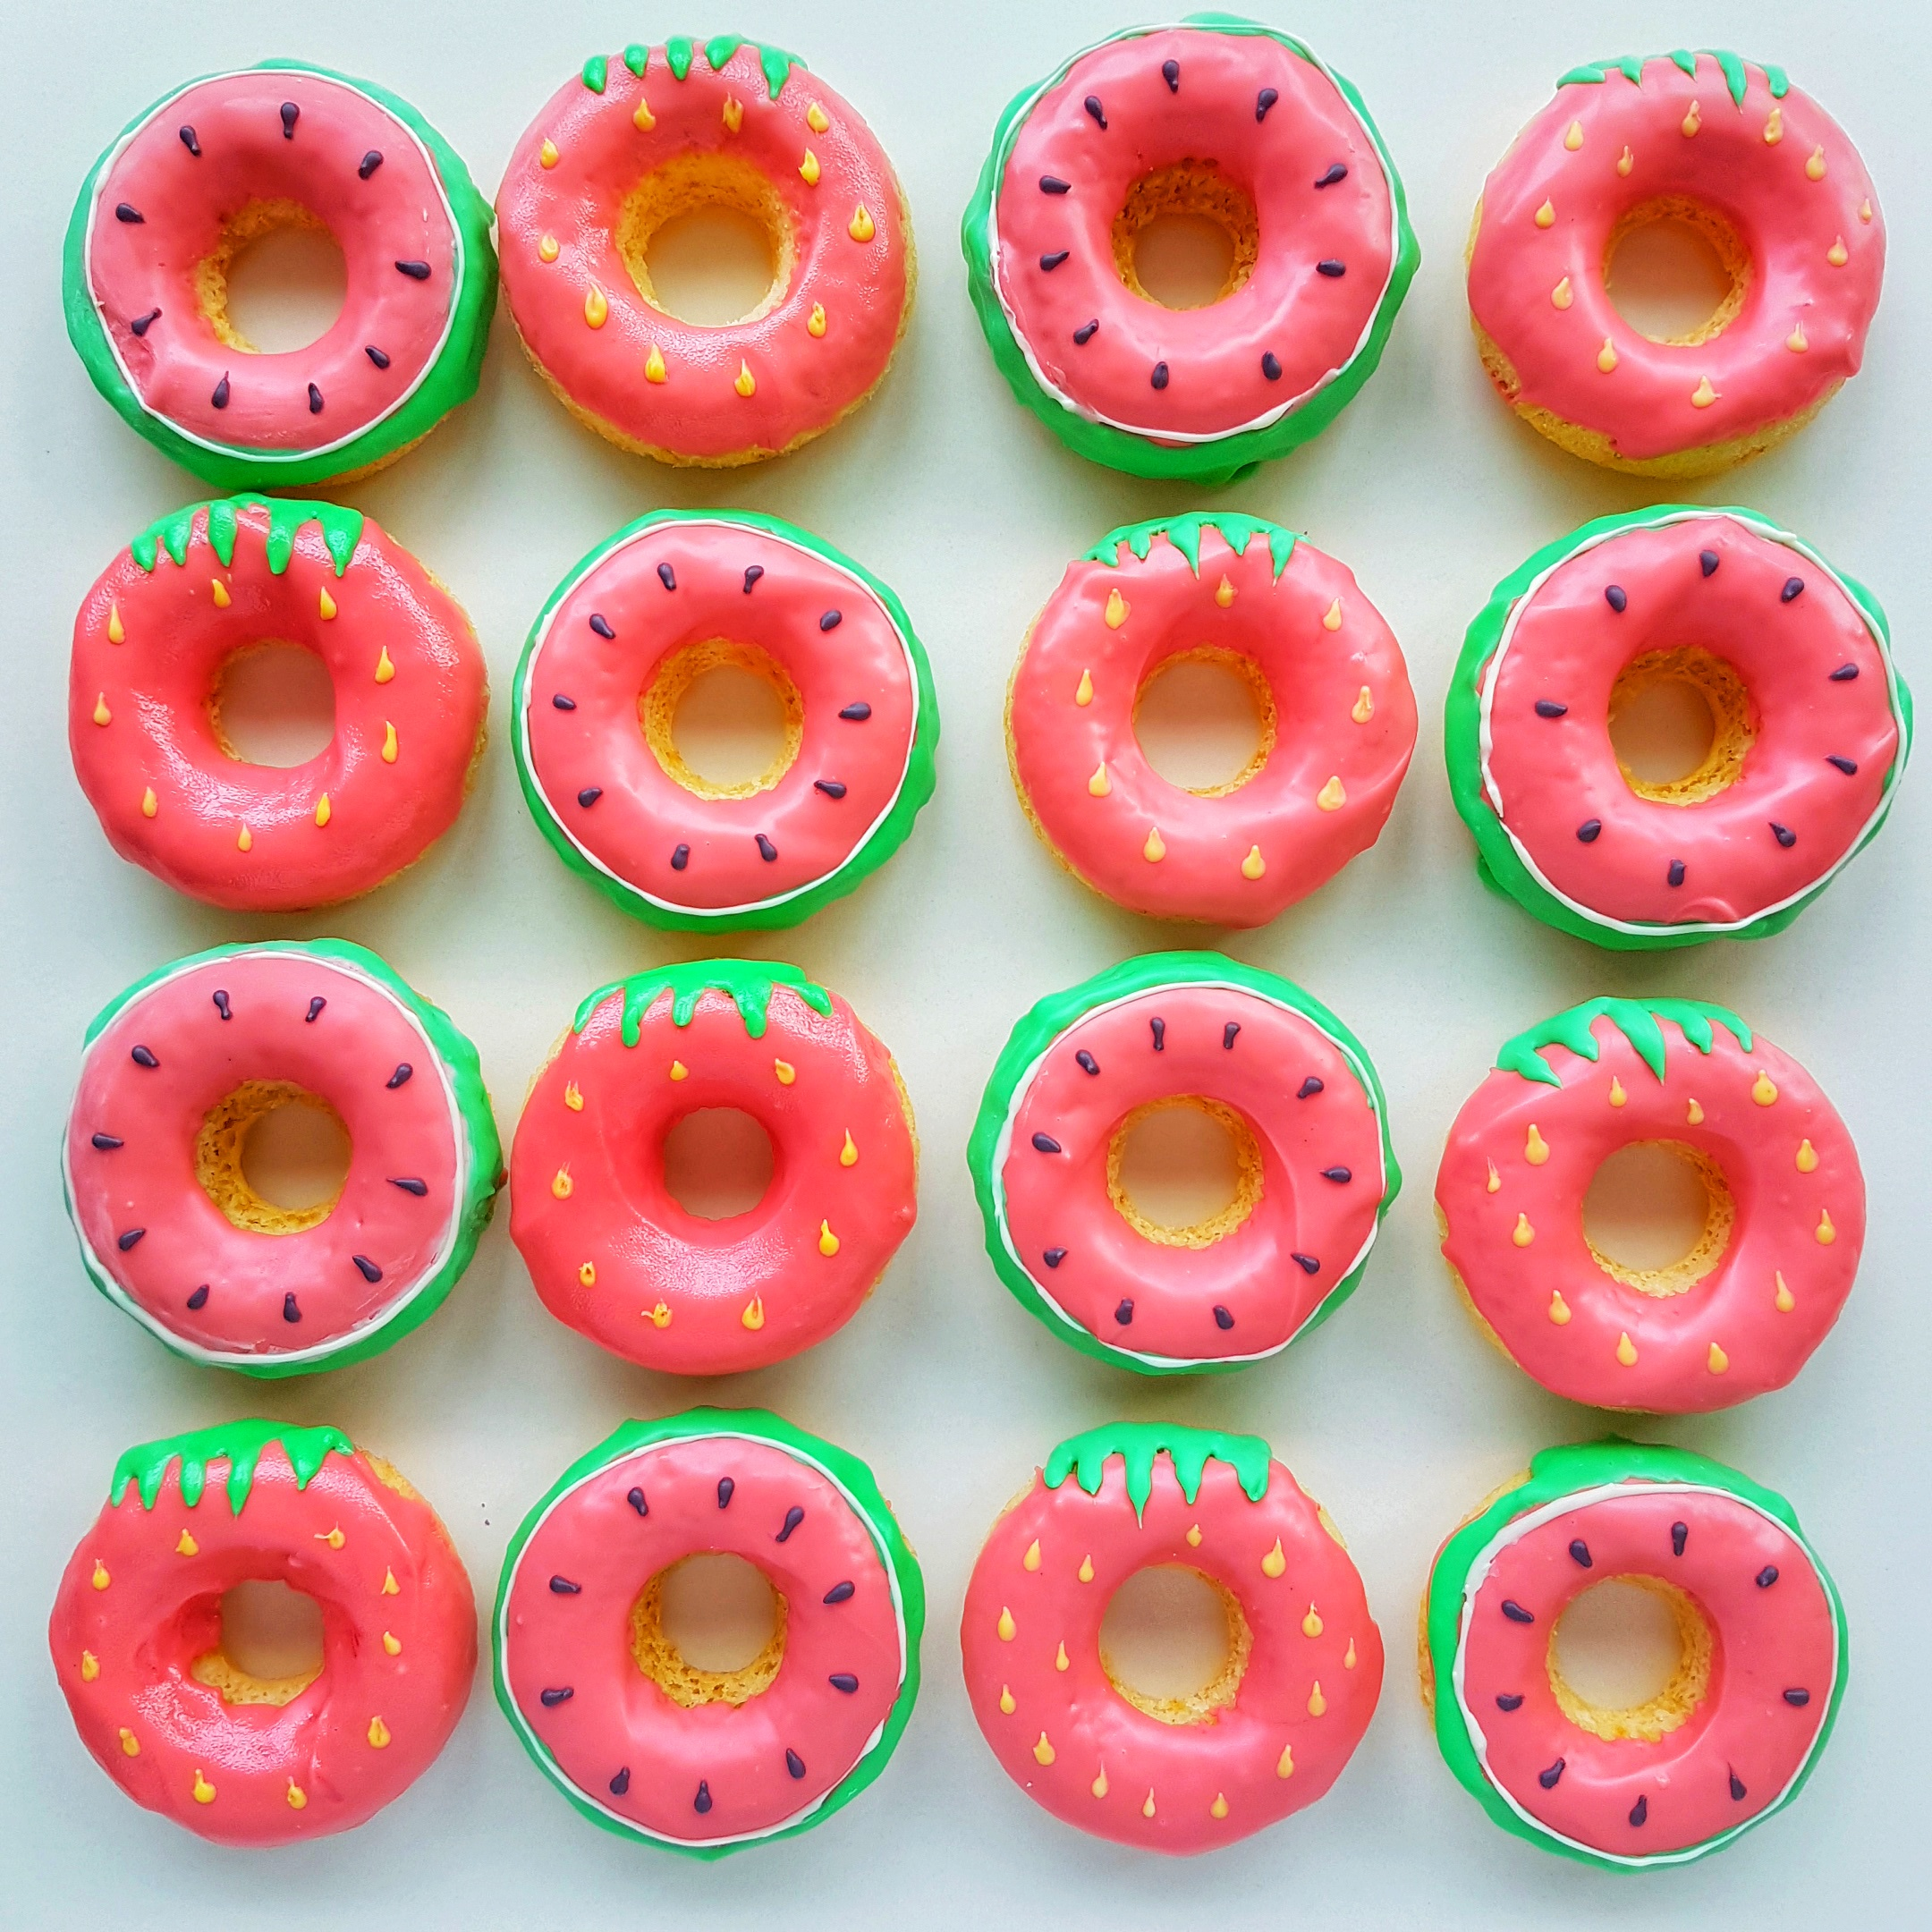 Tutti Frutti Donuts by The Baking Experiment